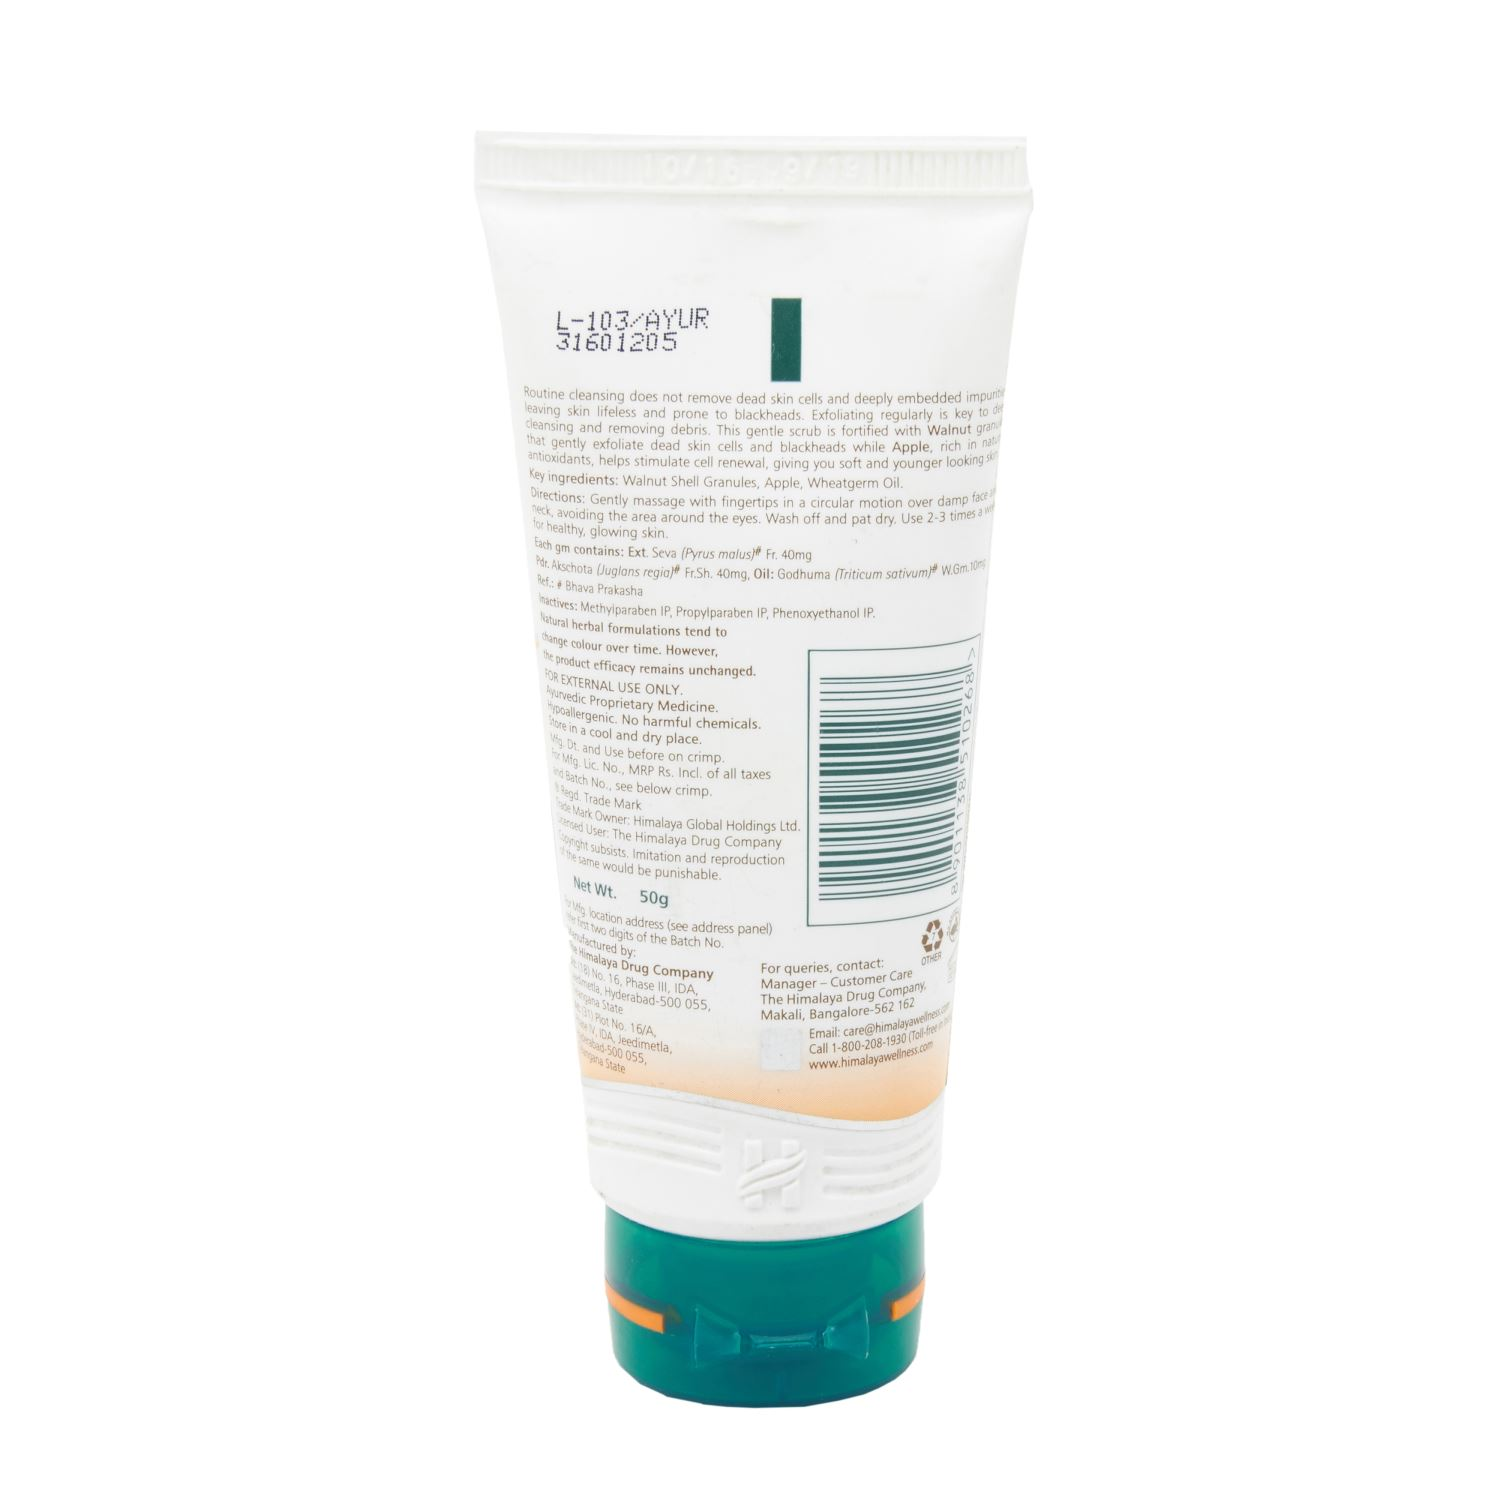 Himalaya Walnut Scrub - 50 gm